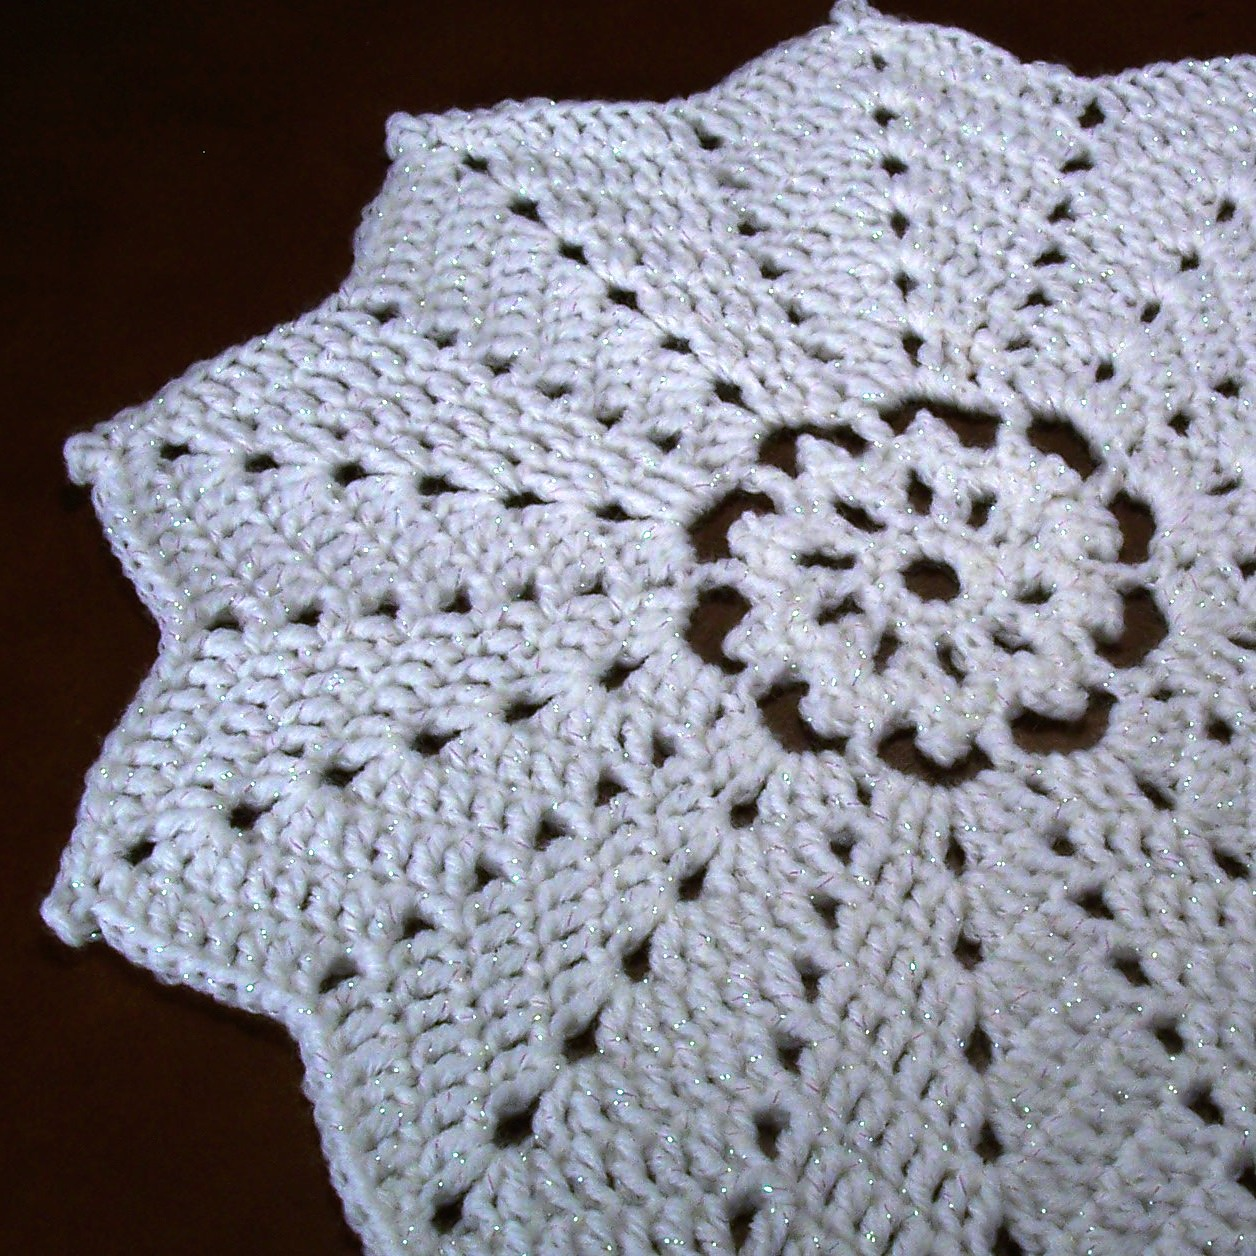 Crocheting Placemats : Crochet Pretty Petaled Placemat and Napkin Ring pdf Crochet Pattern